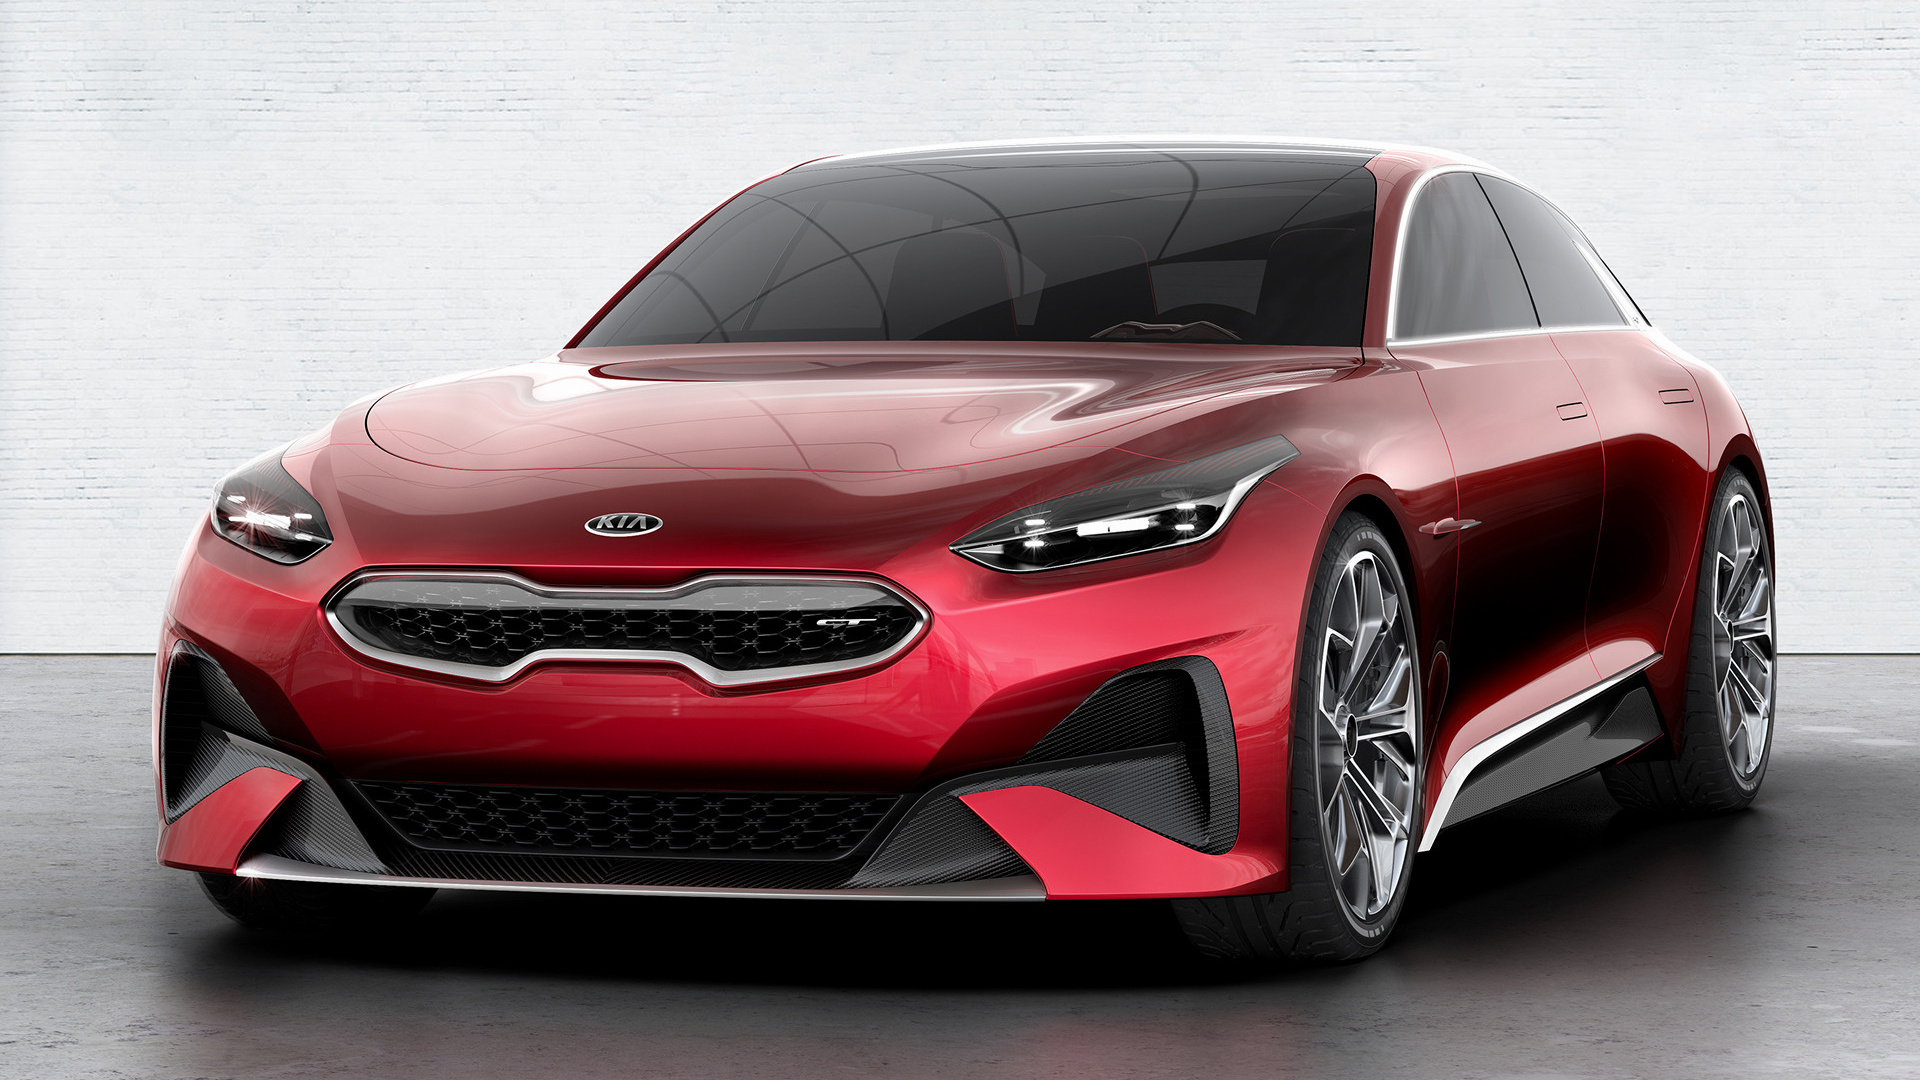 2017 Kia Proceed Concept - Wallpapers and HD Images | Car ...